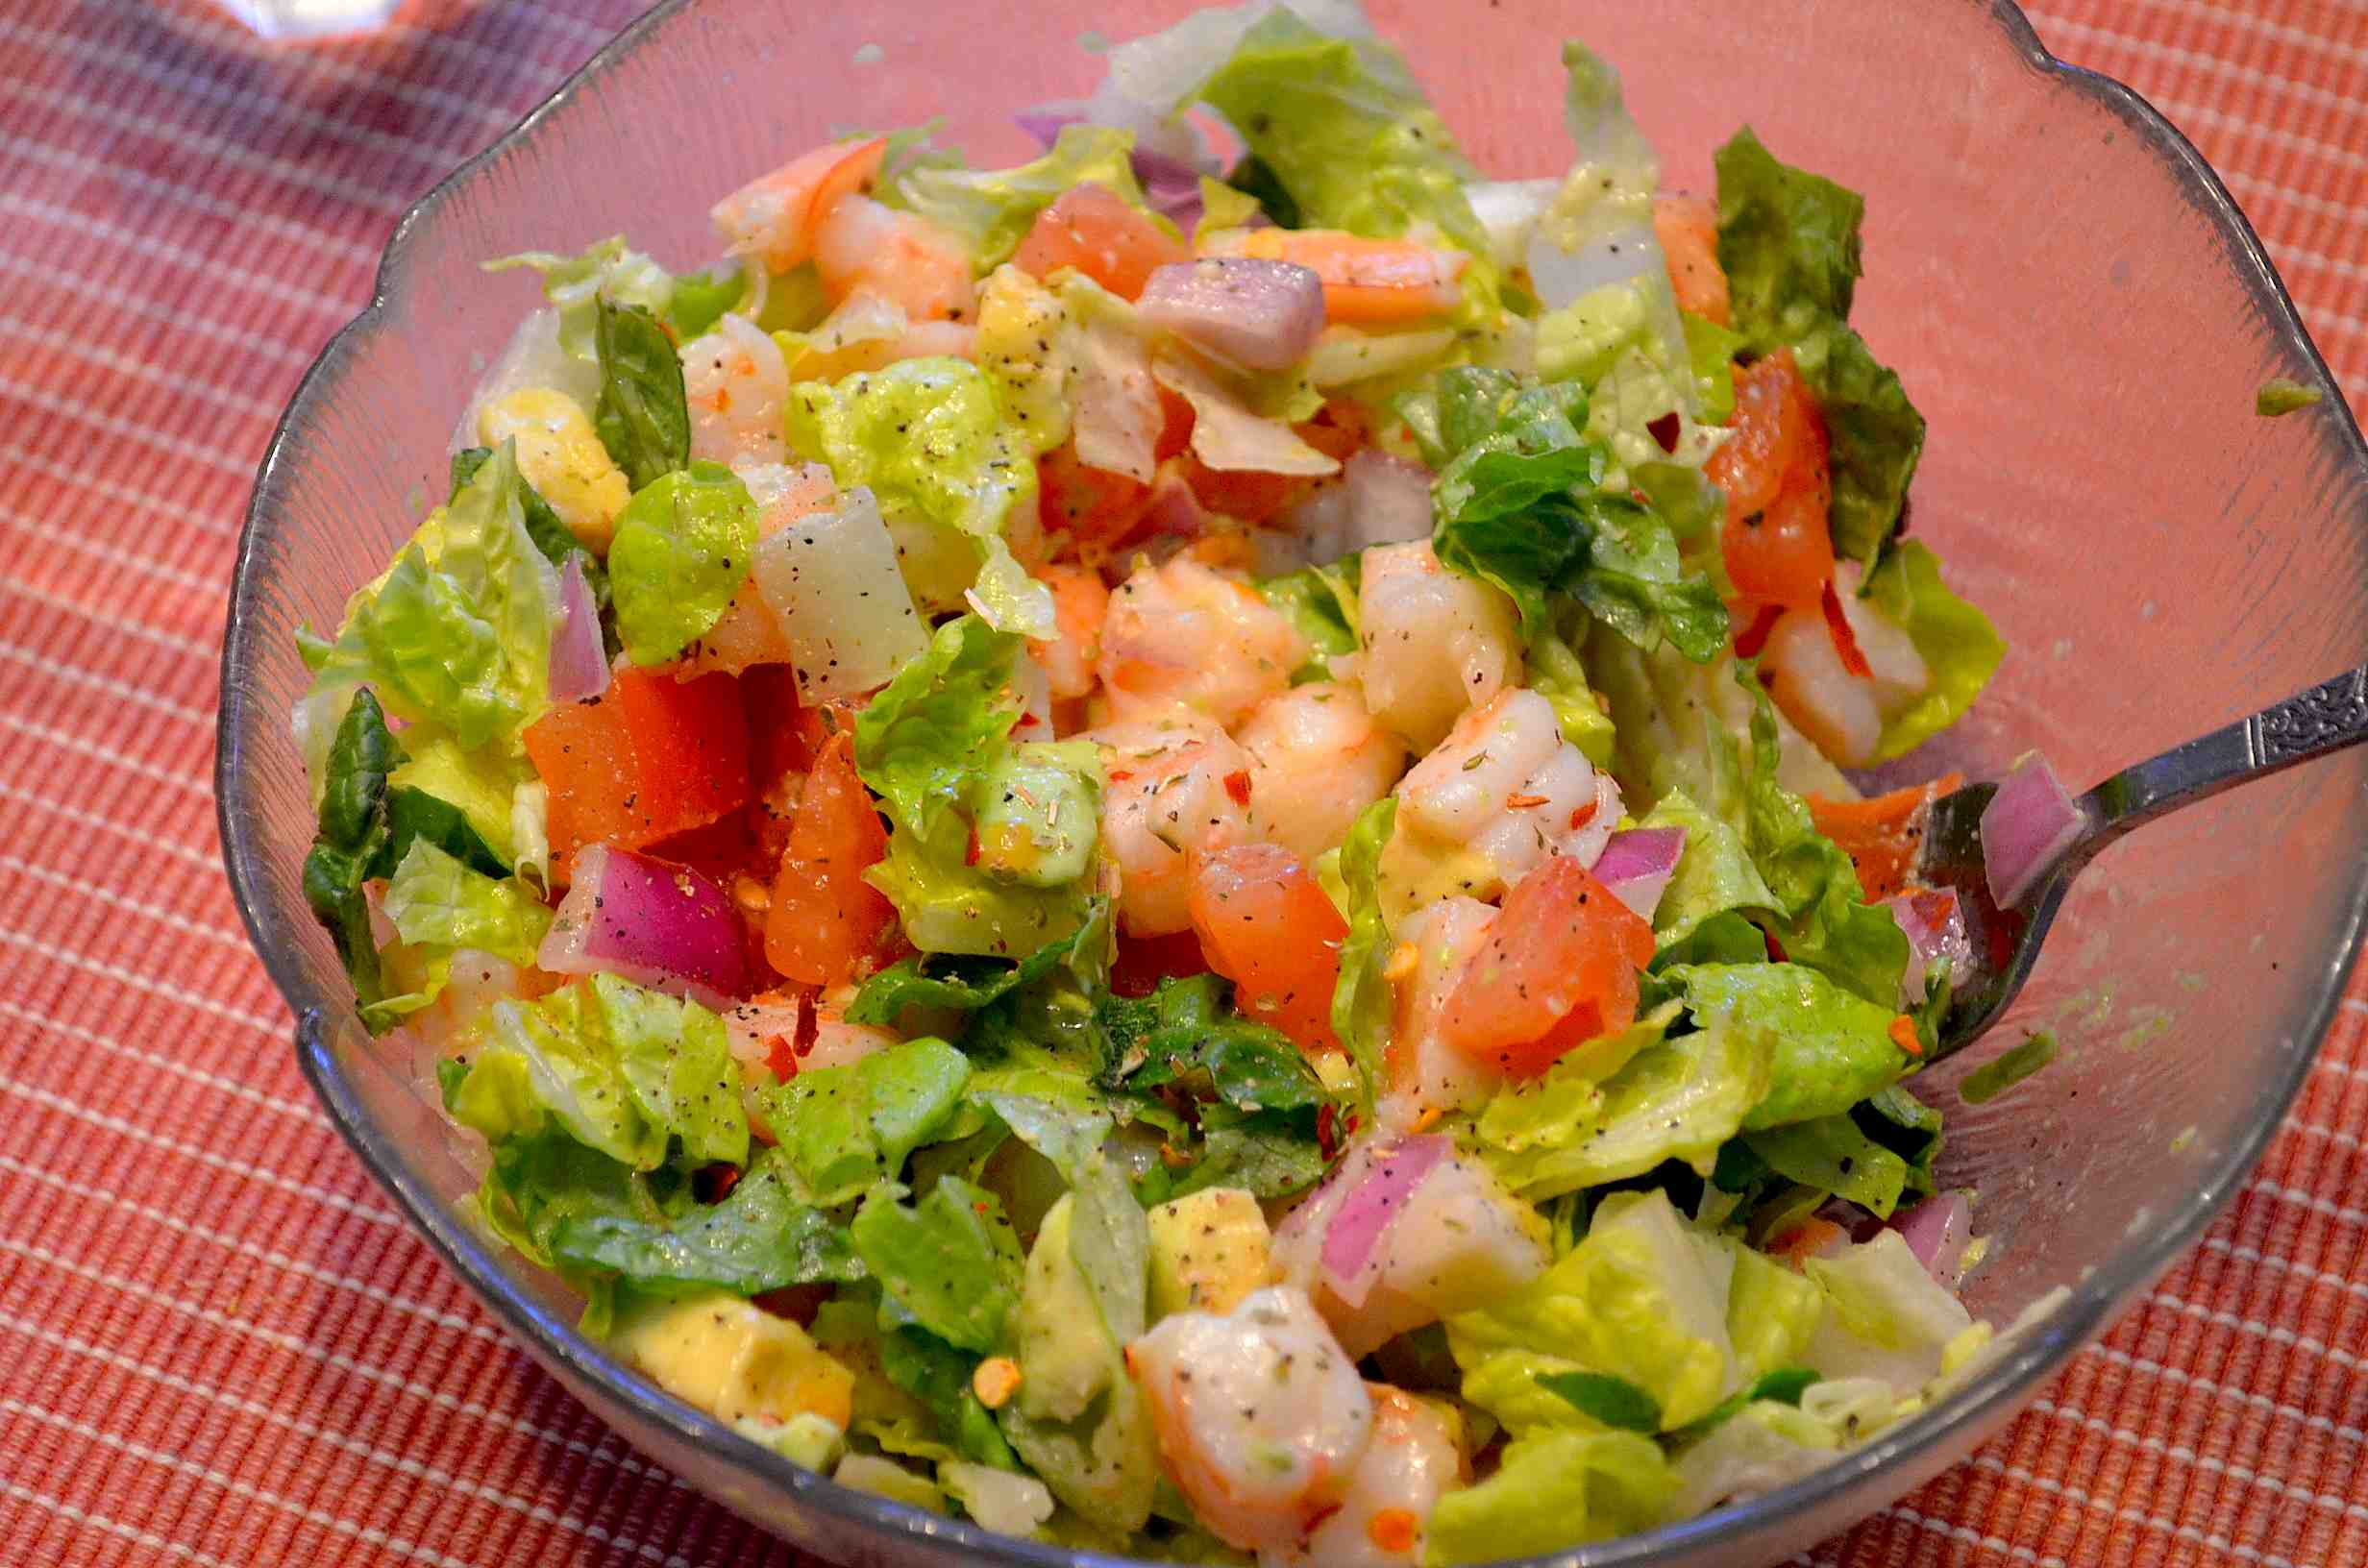 Avocado-Shrimp Salad with Lime Dressing